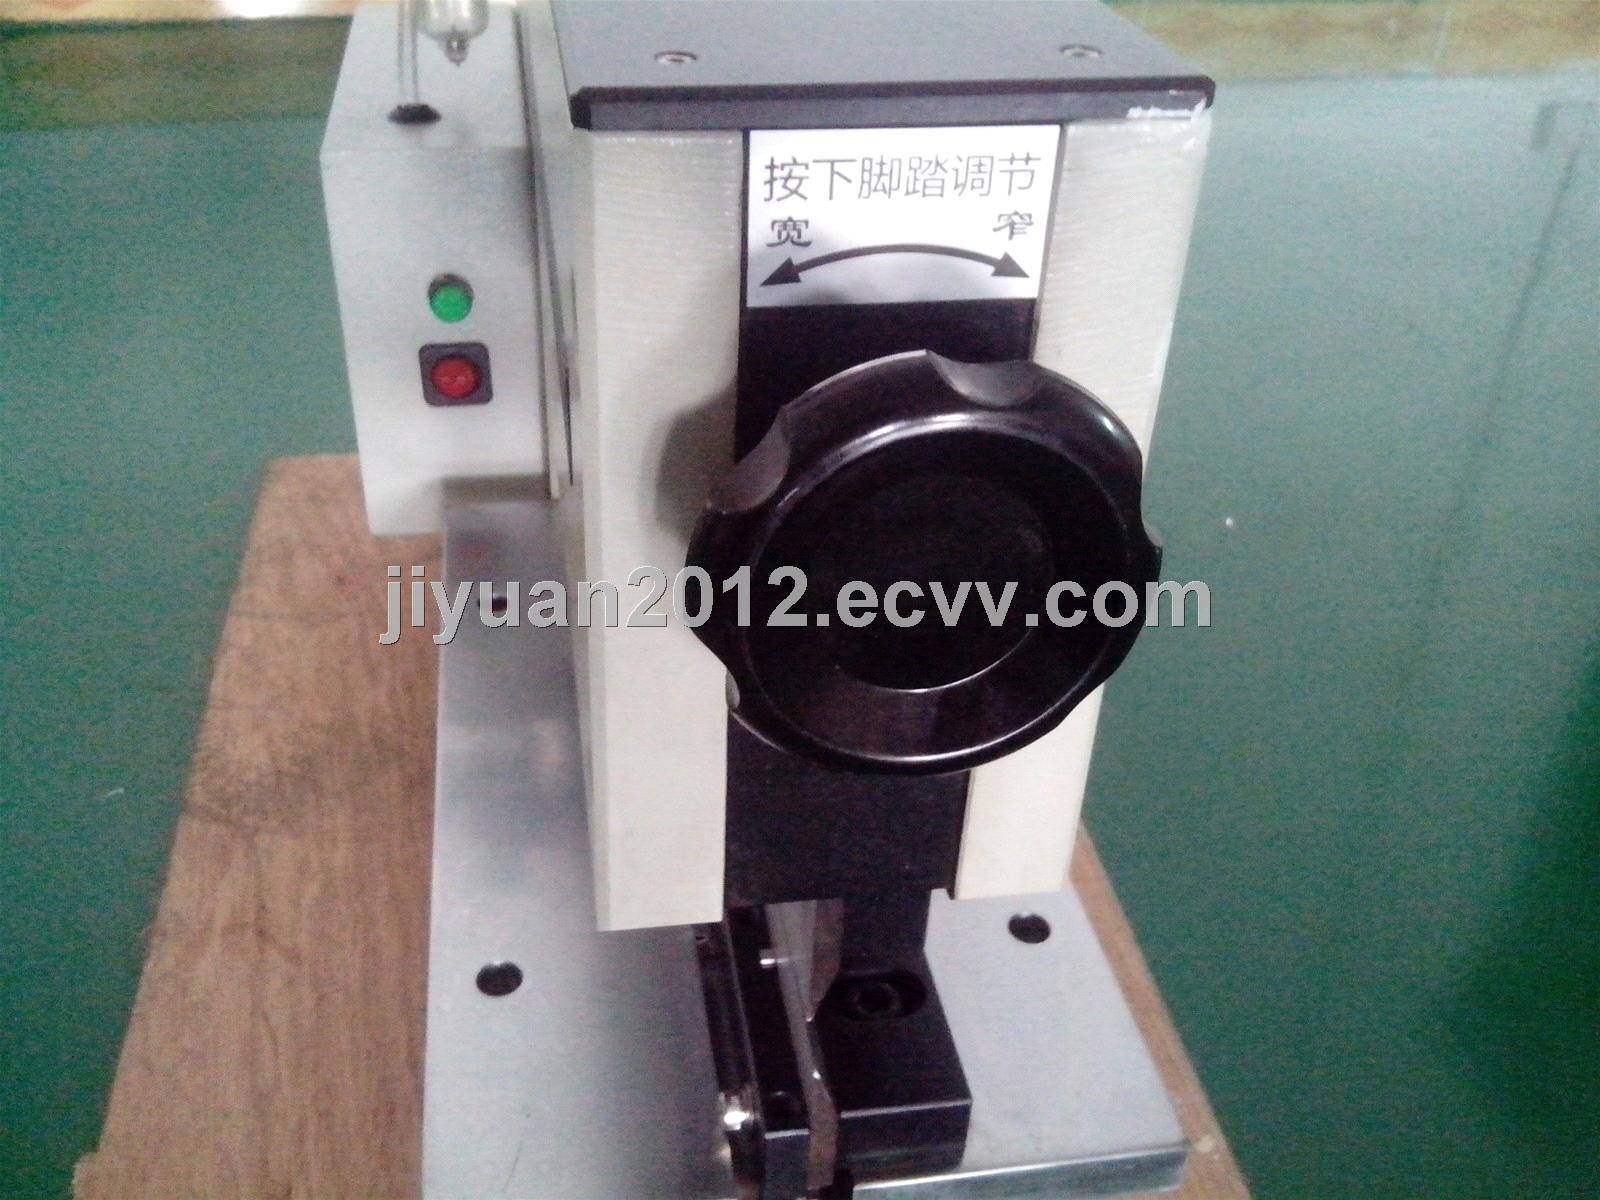 Pcb Depaneling Jyv L330 For Cut V Groove Mcpcb Purchasing Souring Board Cutting Machine Circuit Cutter Of Pcbdepanelingmachine